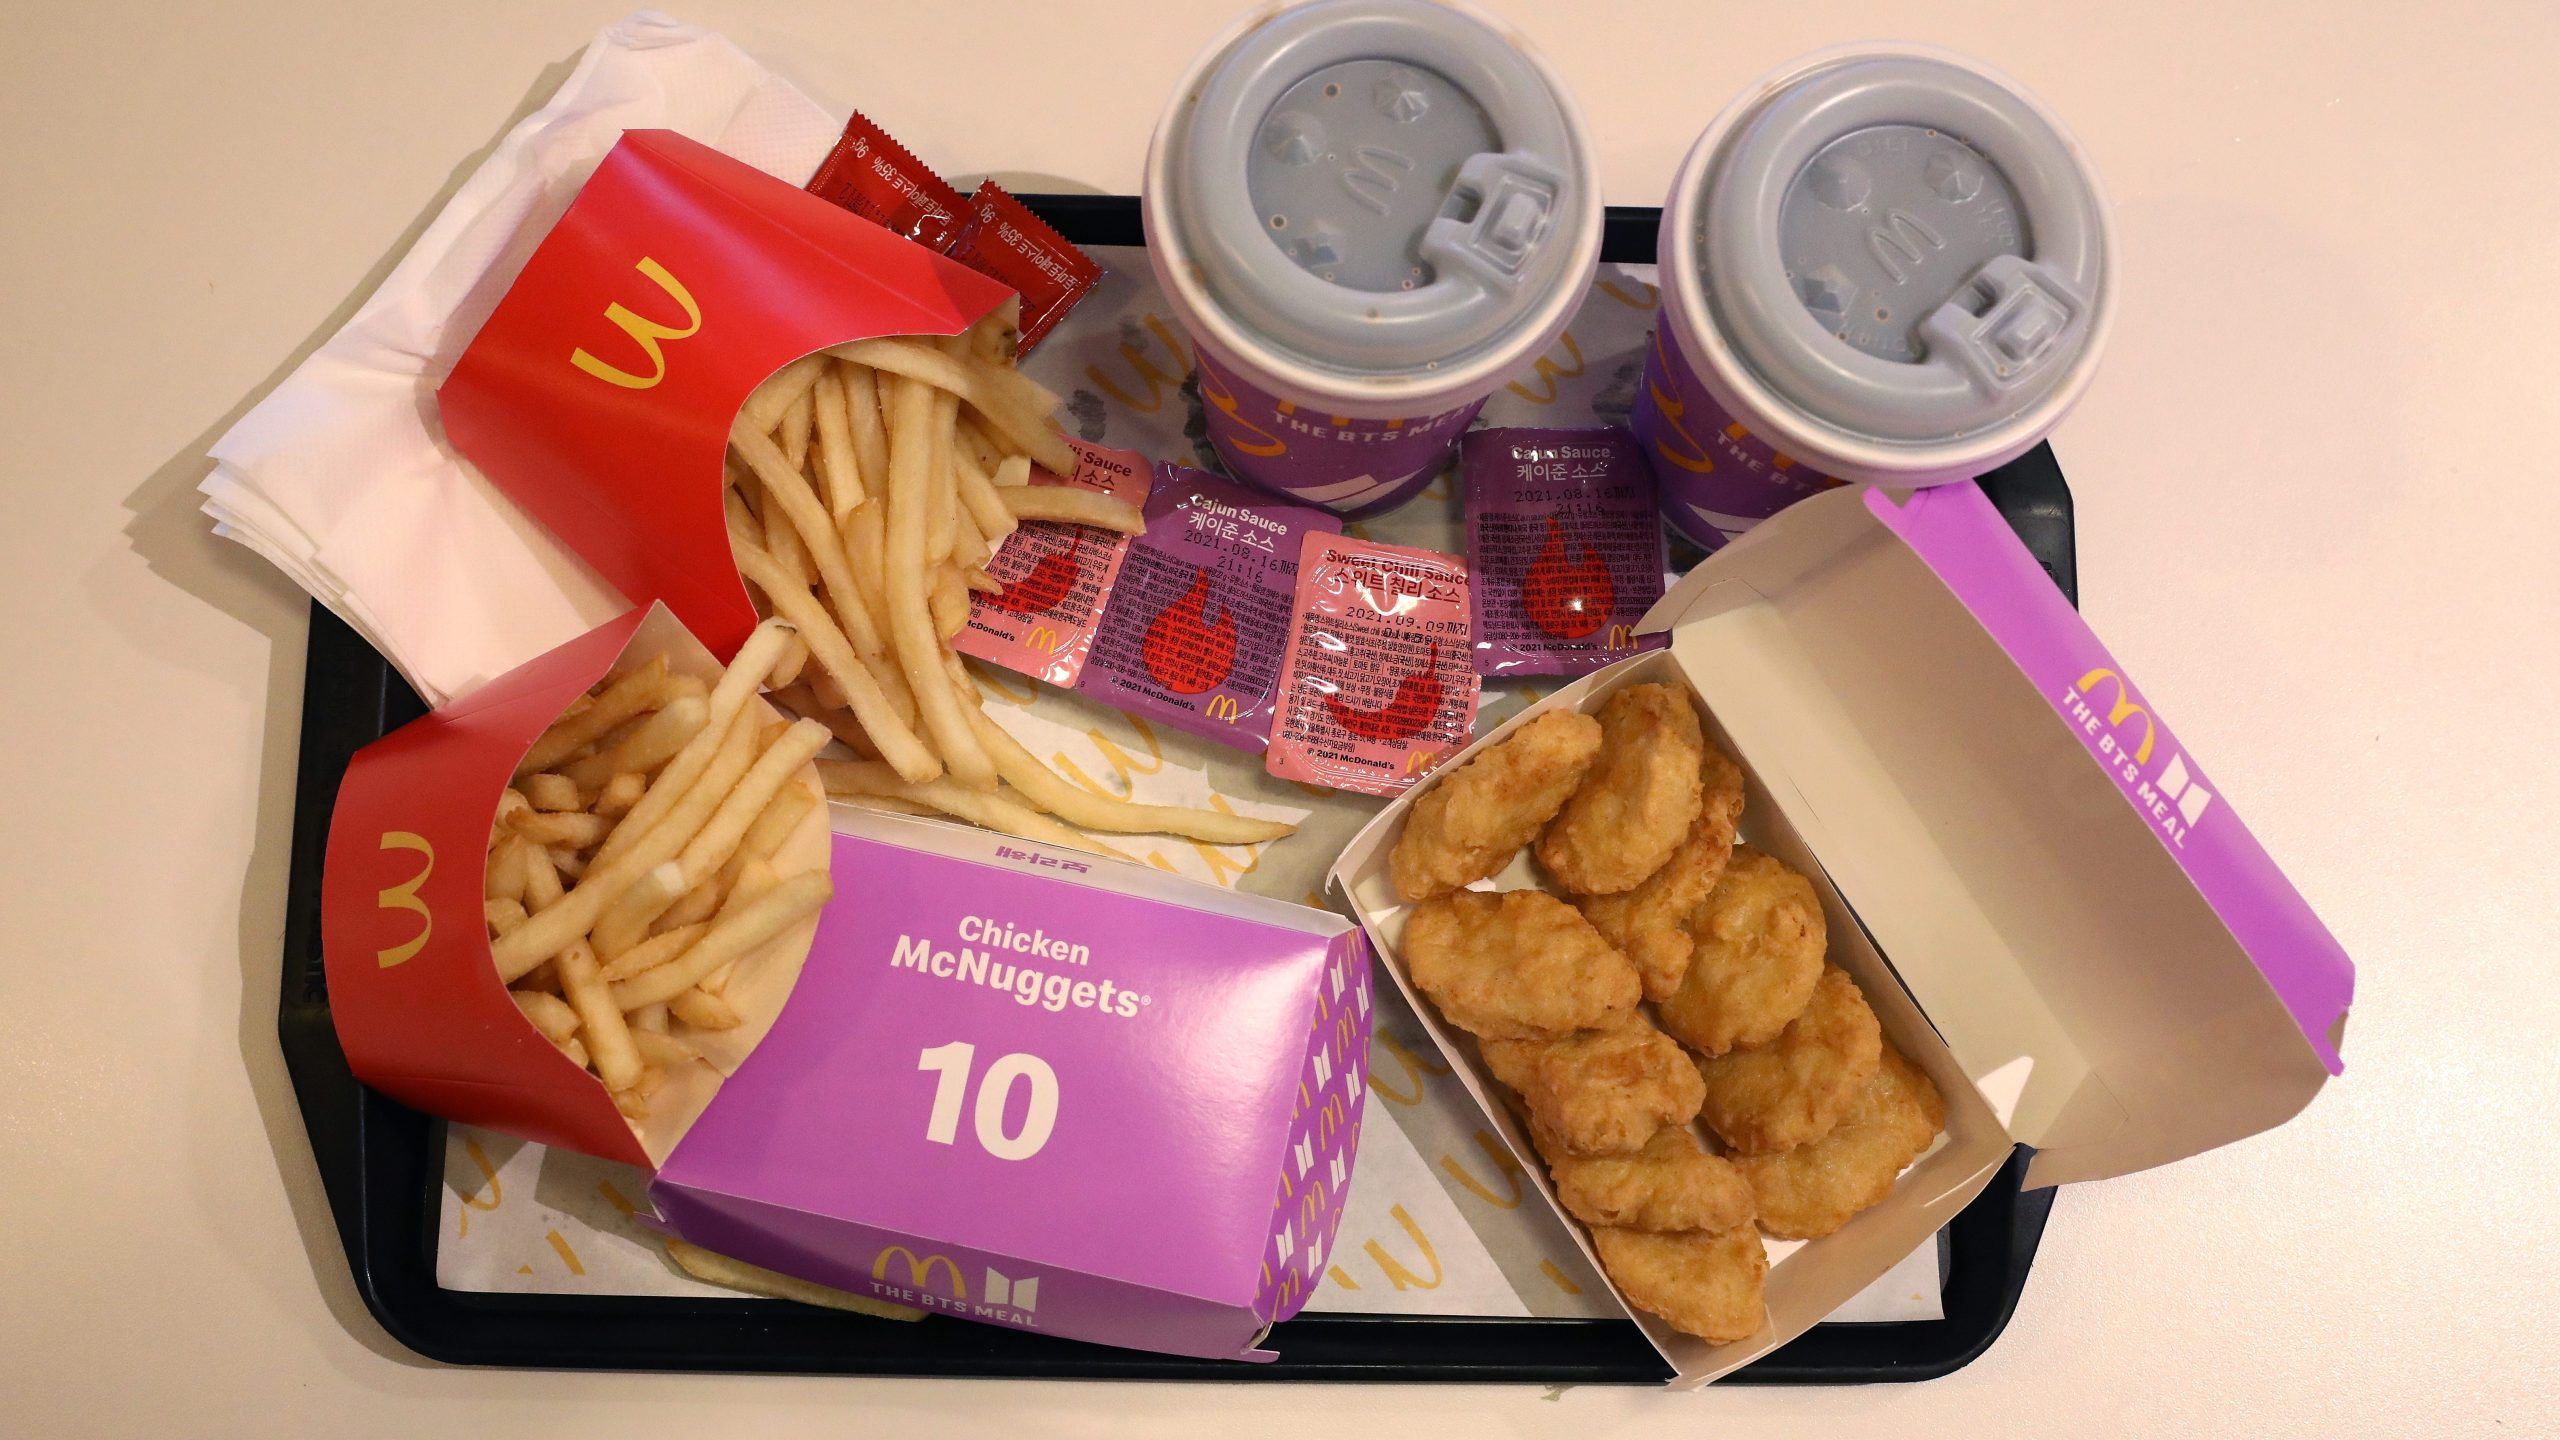 Awesome Bts Mcdonalds Bag For Sale Ebay wallpapers to download for free greenvirals